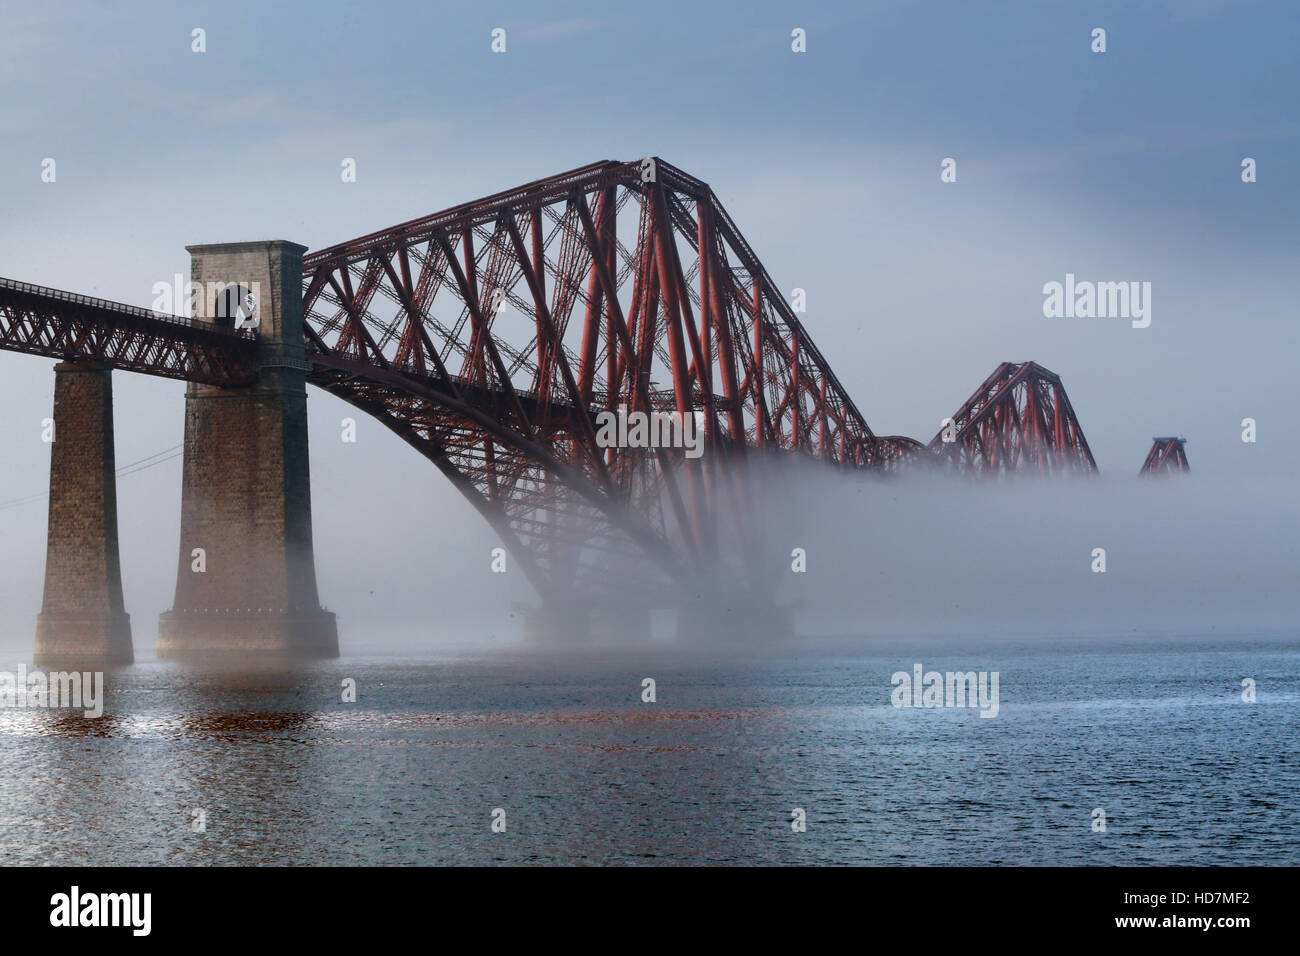 The Haar (fog) rolls in on the Firth of Forth in South Queensferry, Edinburgh and starts to engulf the Rail Bridge, - Stock Image